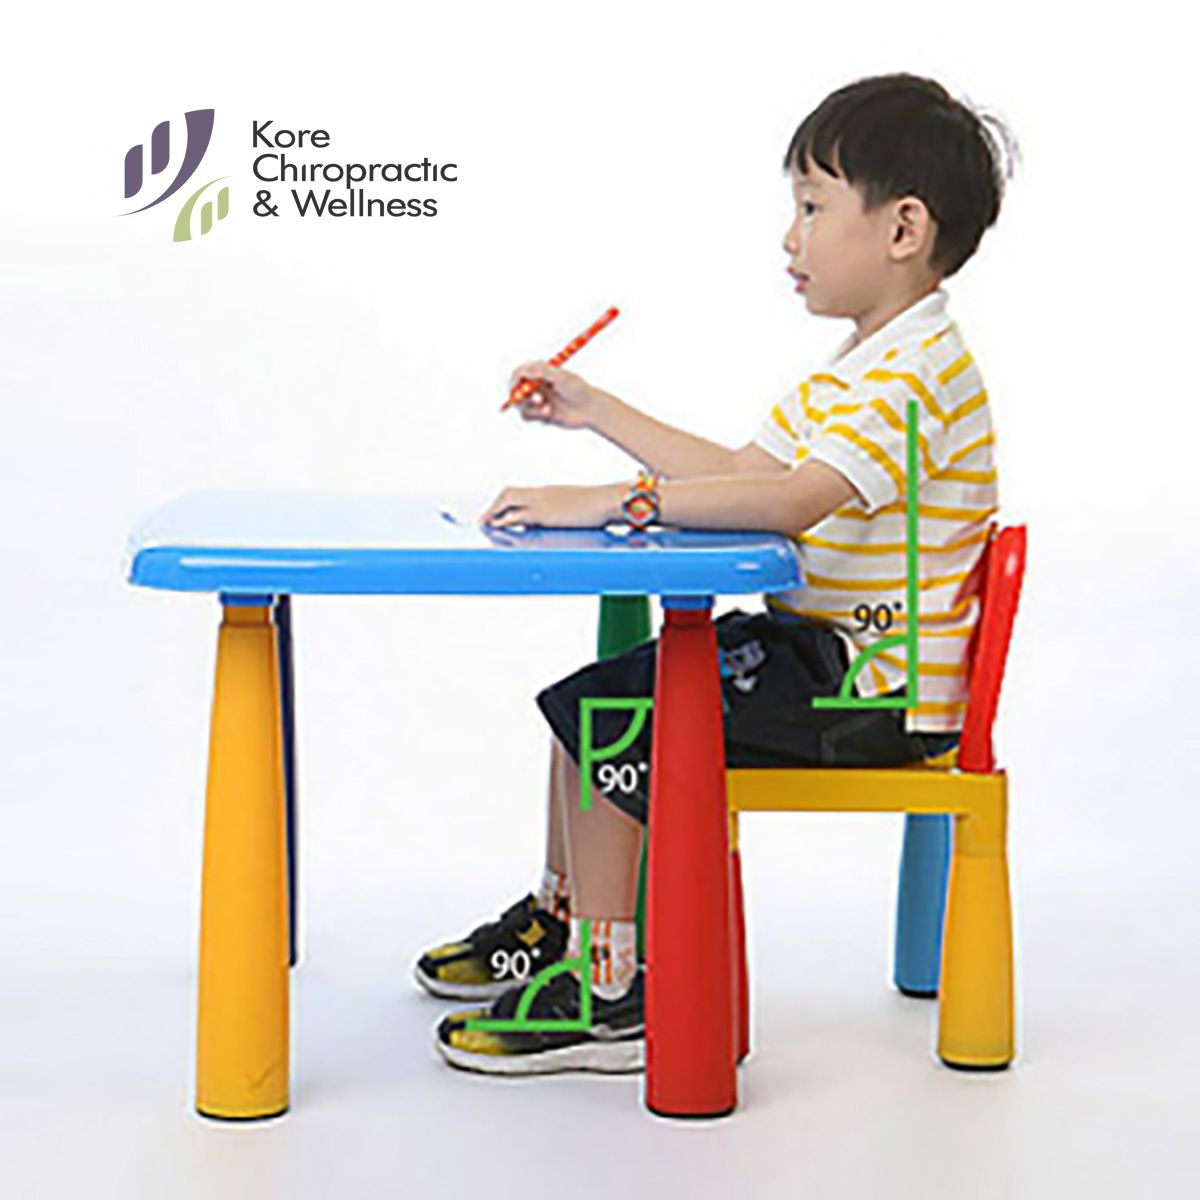 What is Postural Stability? How to Improve Child's Posture While Sitting